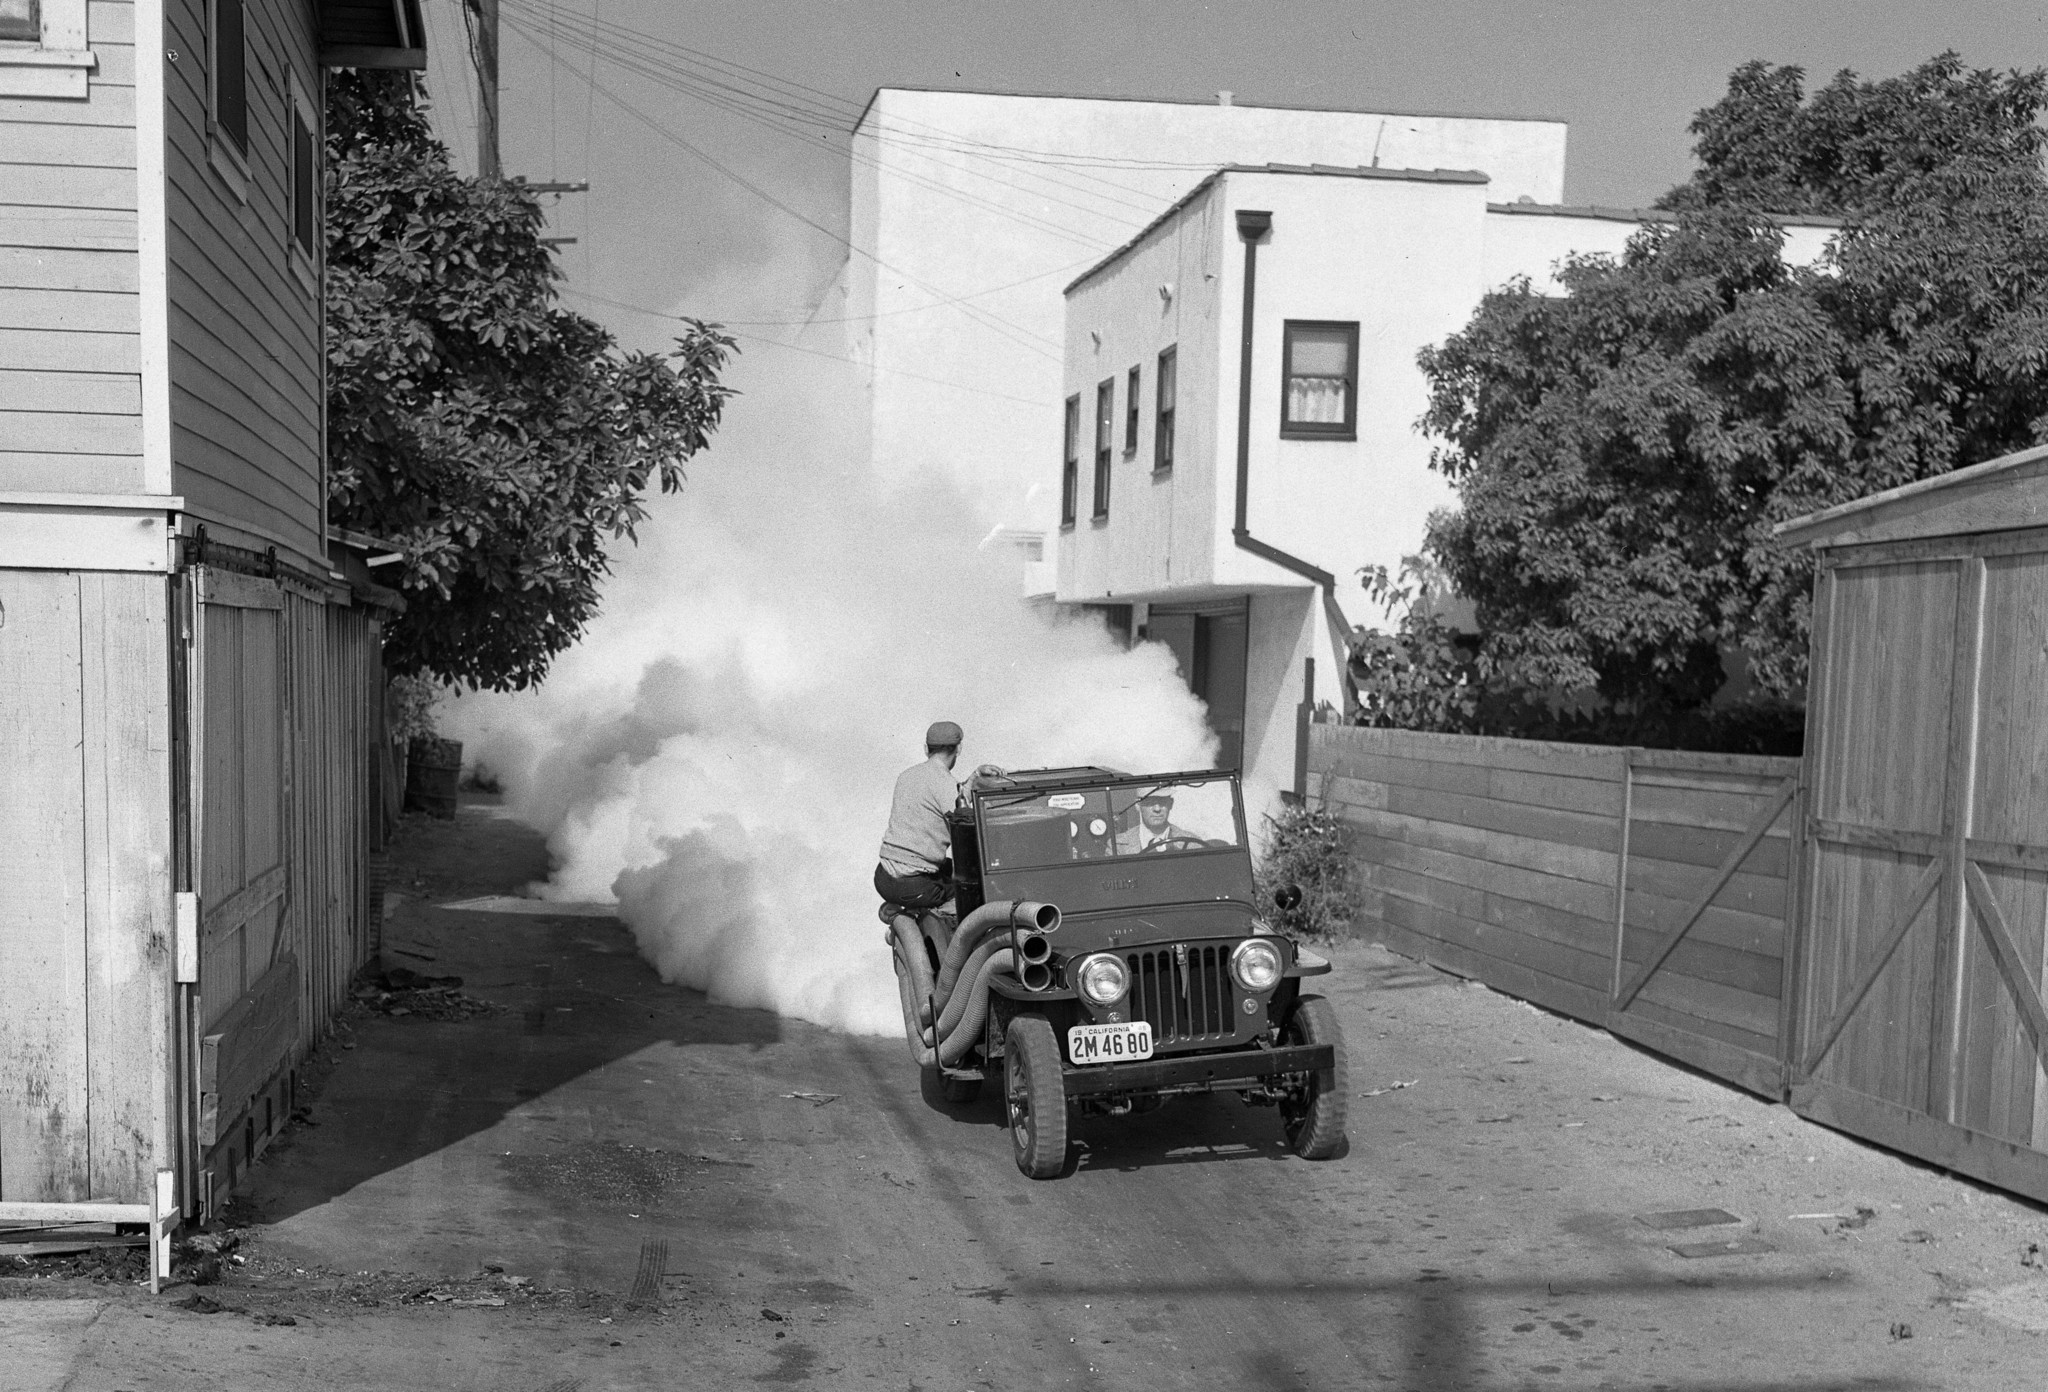 A crew sprays a solution containing DDT in an alley in Santa Monica in 1948.